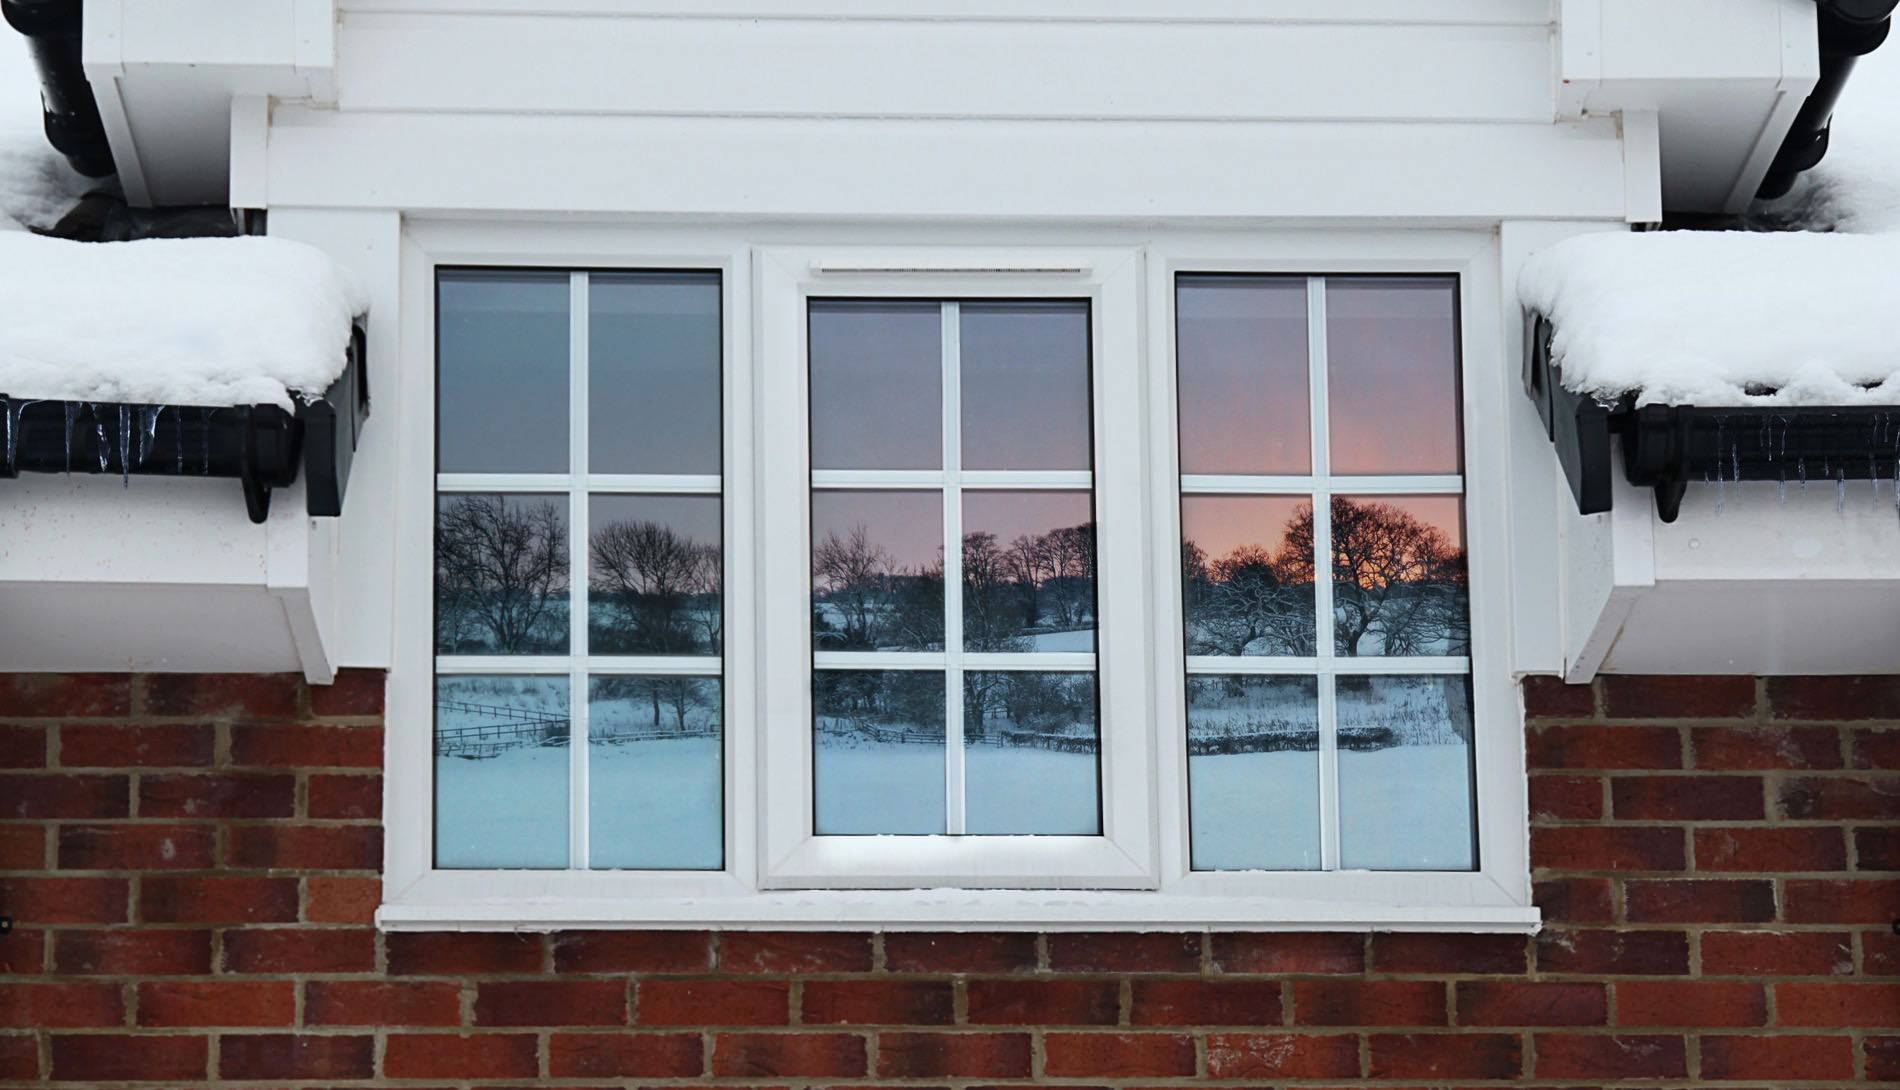 tinted or coated double glazing glass keeps out excess radiation